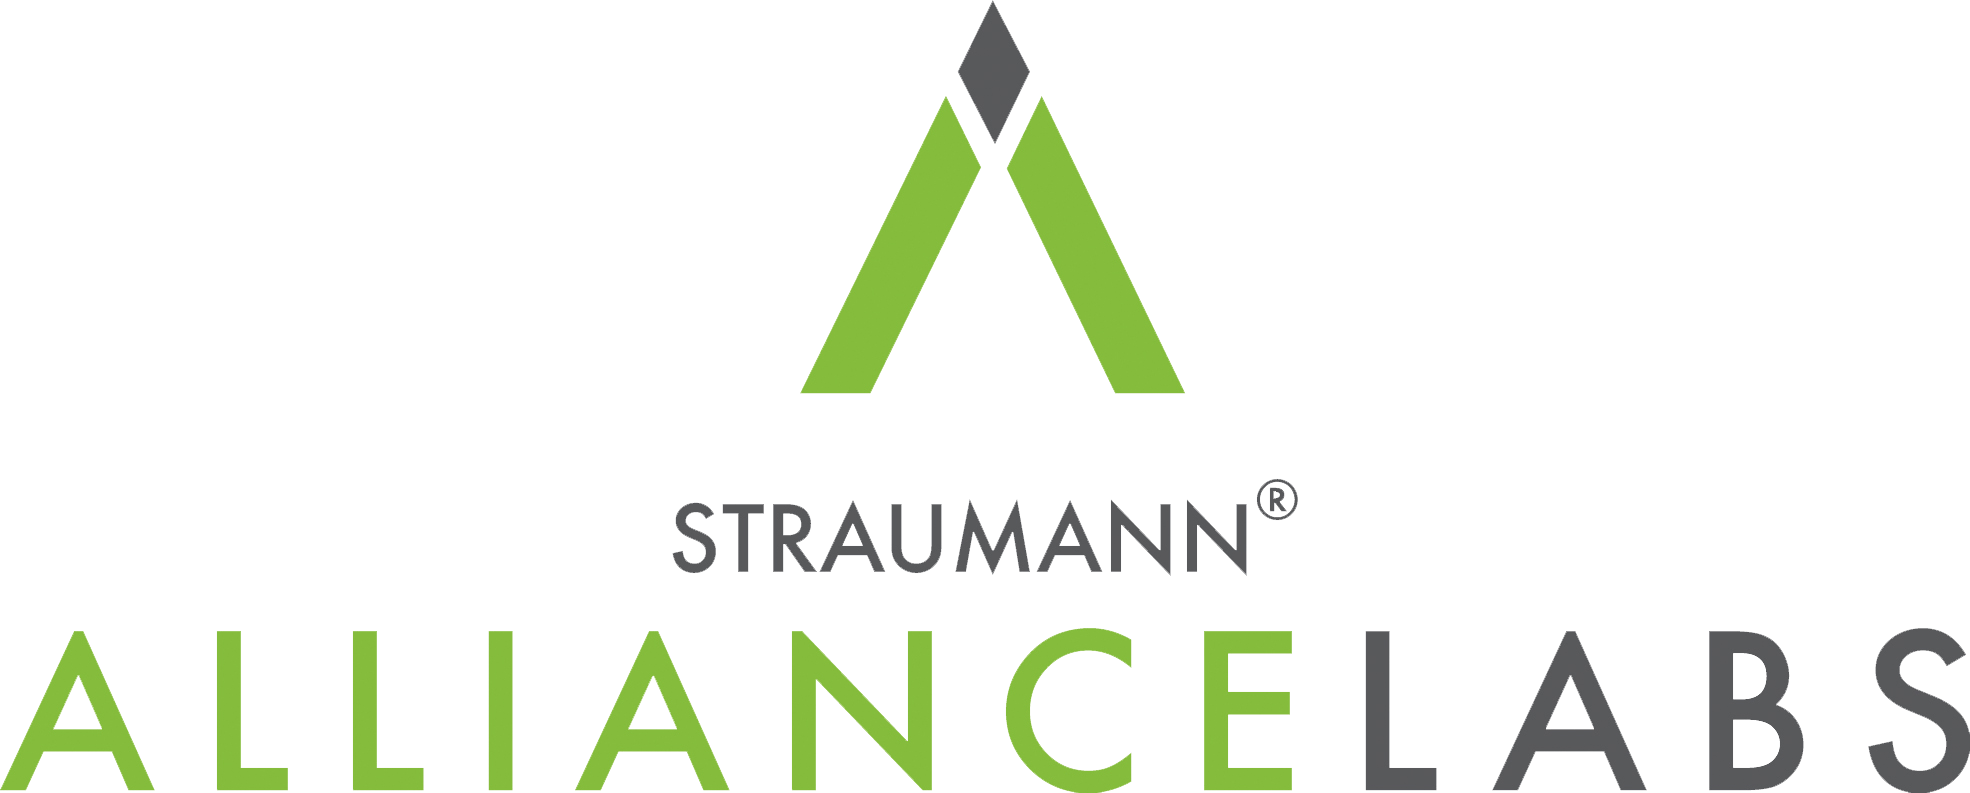 Straumann Alliance Lab